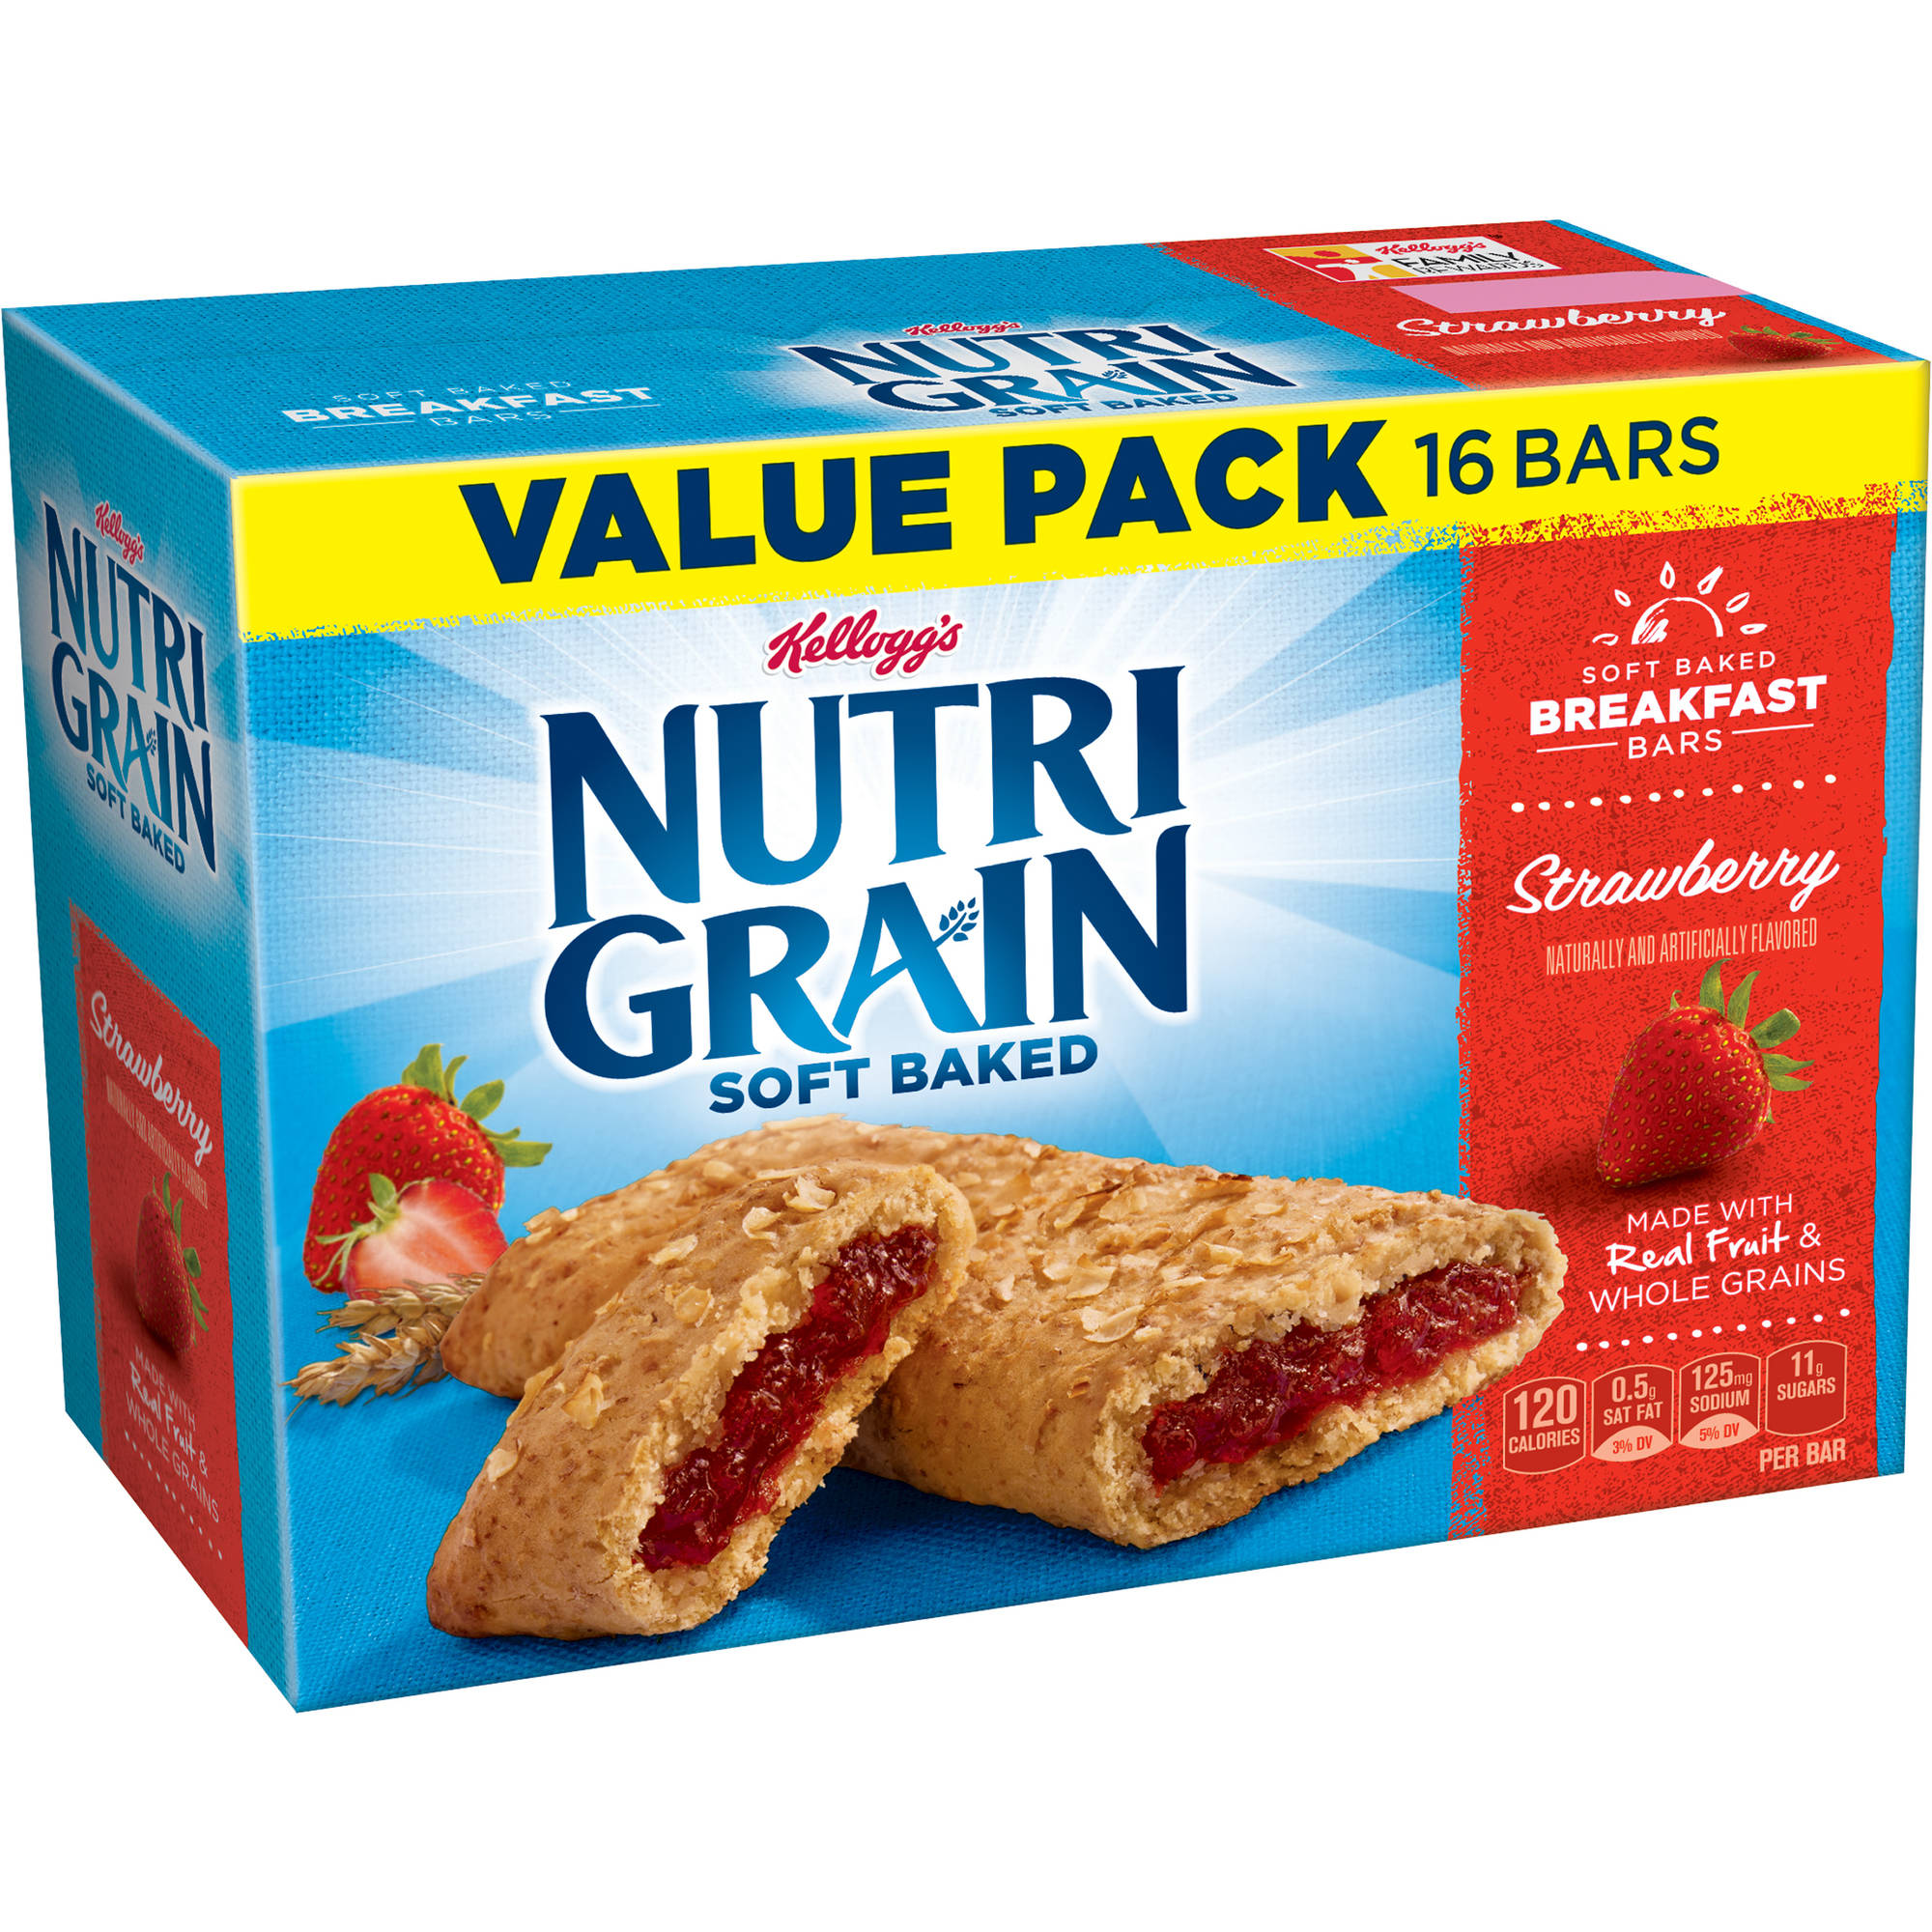 Kellogg's Nutri-Grain Soft Baked Strawberry Breakfast Bars, 1.3 oz, 16 count